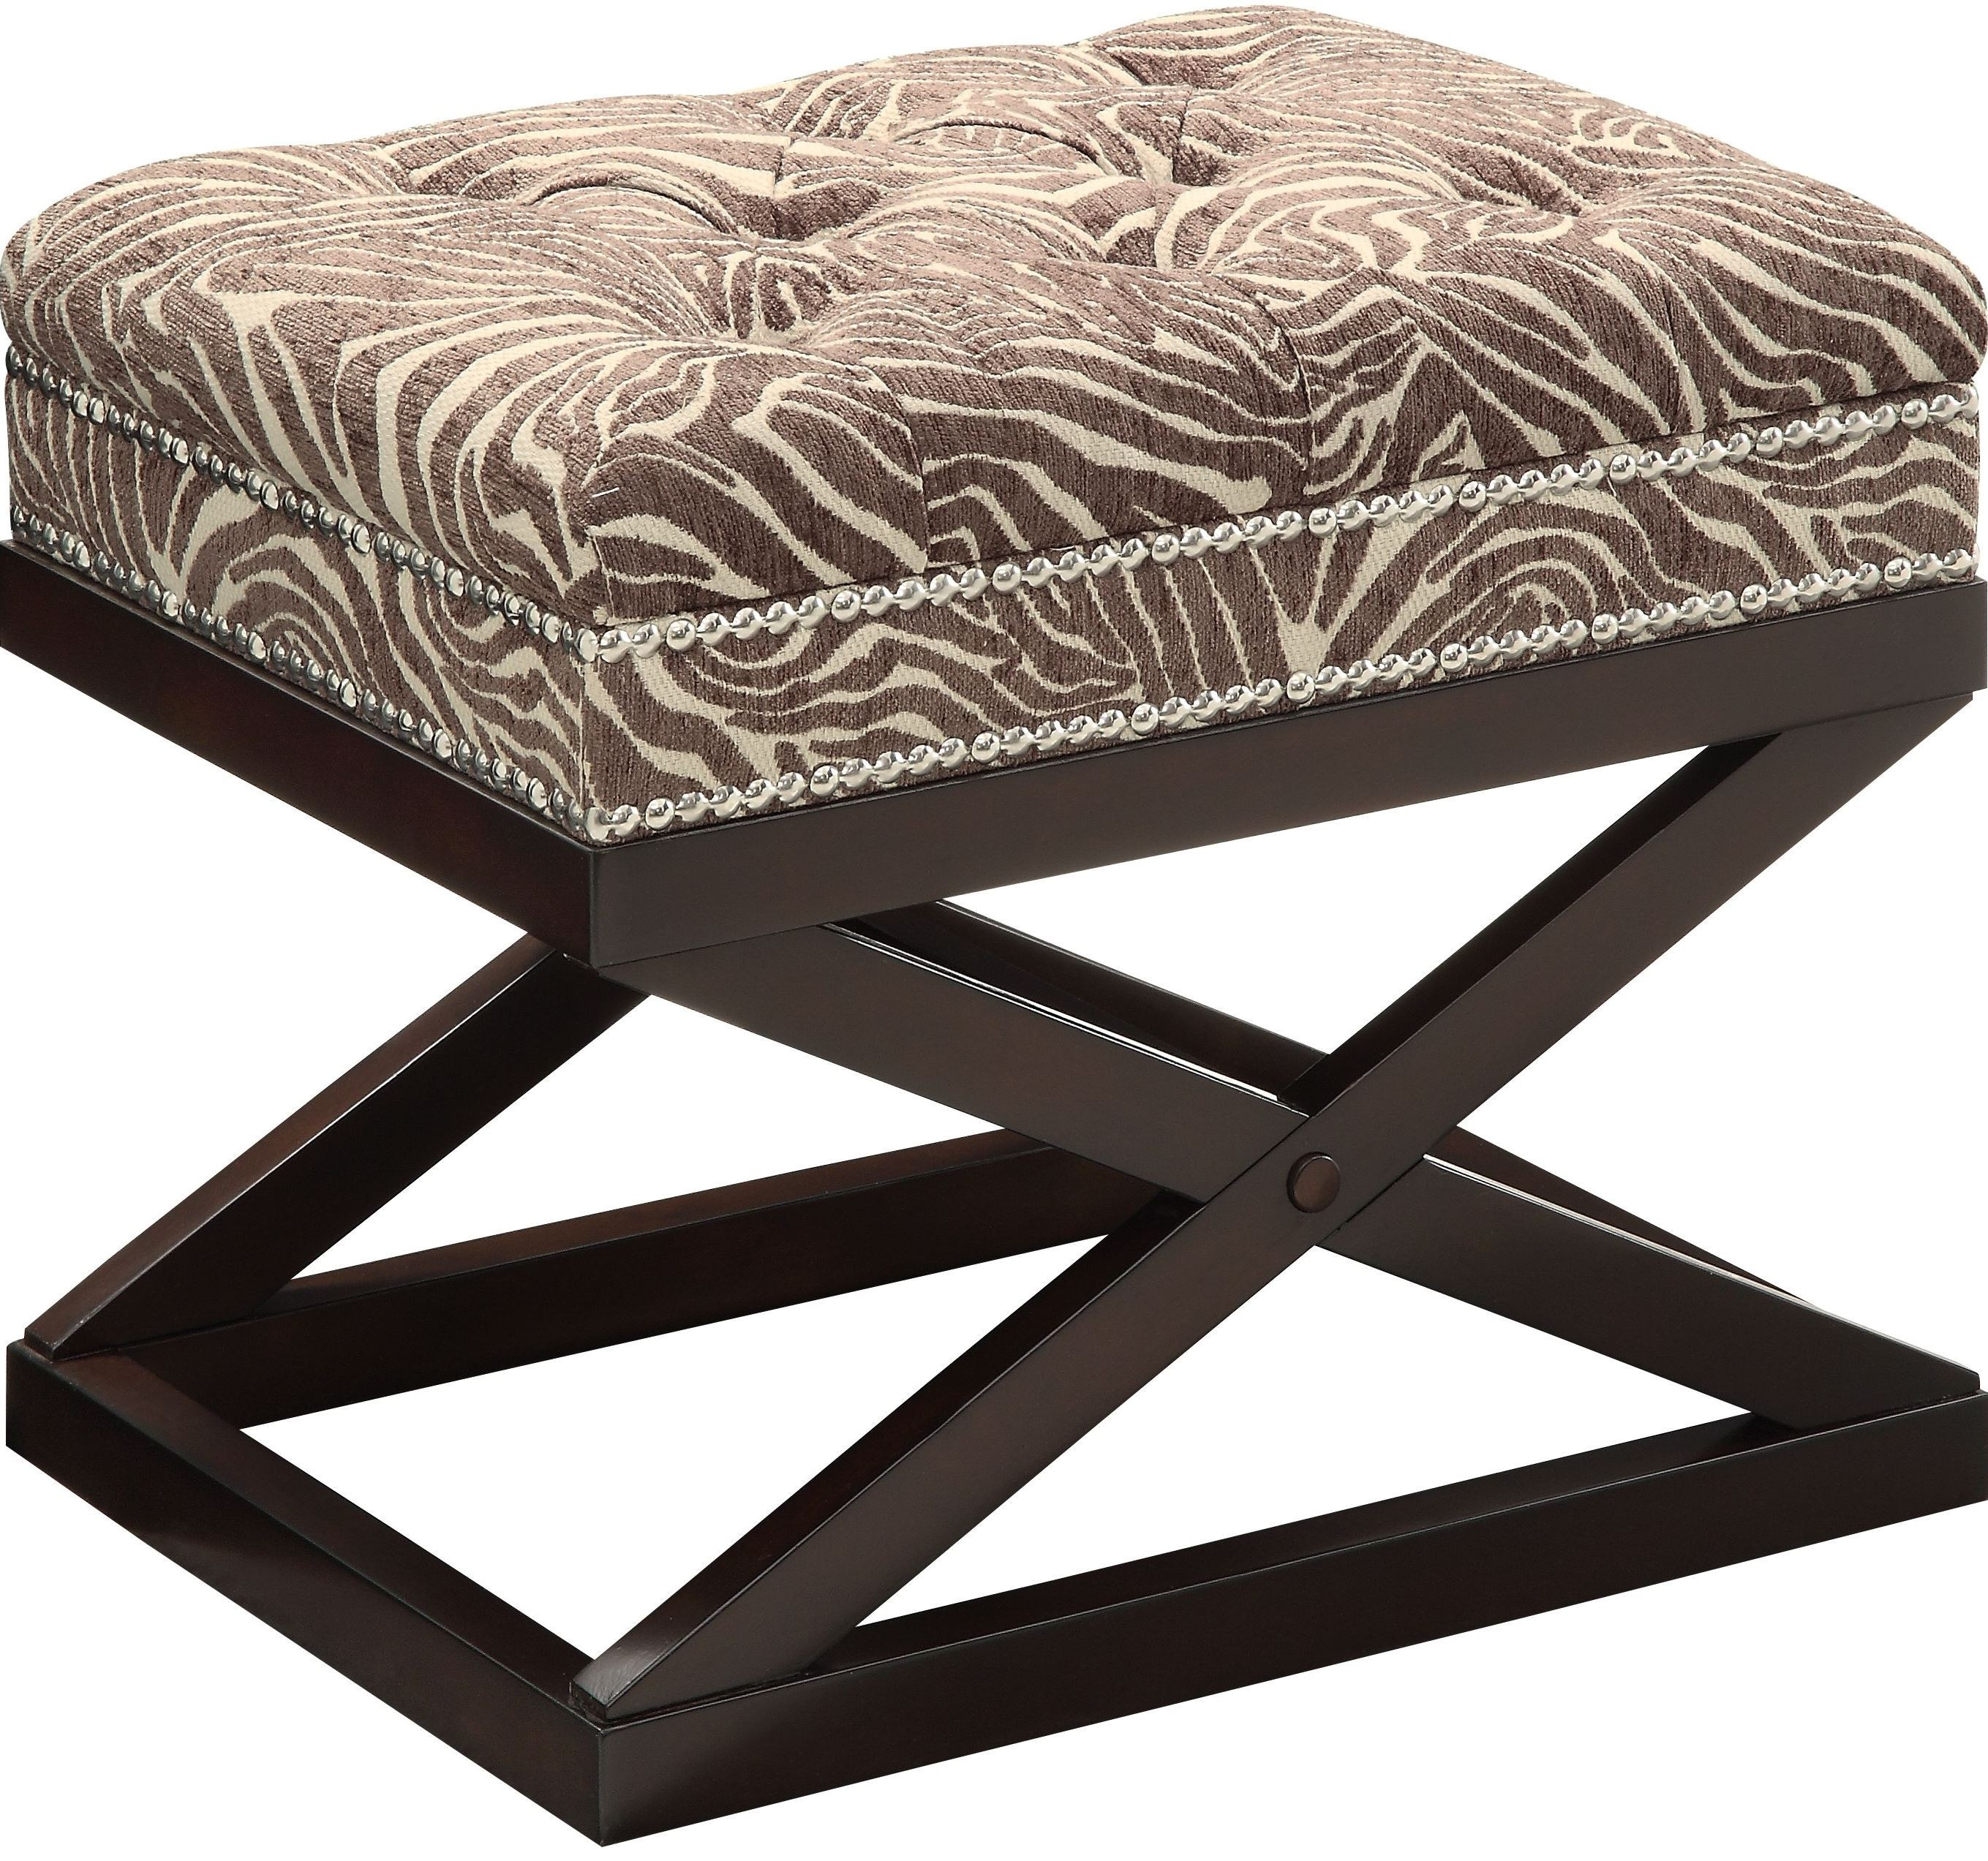 Beige Brown Animal Print Accent Bench From Coast To Coast 70729 Coleman Furniture